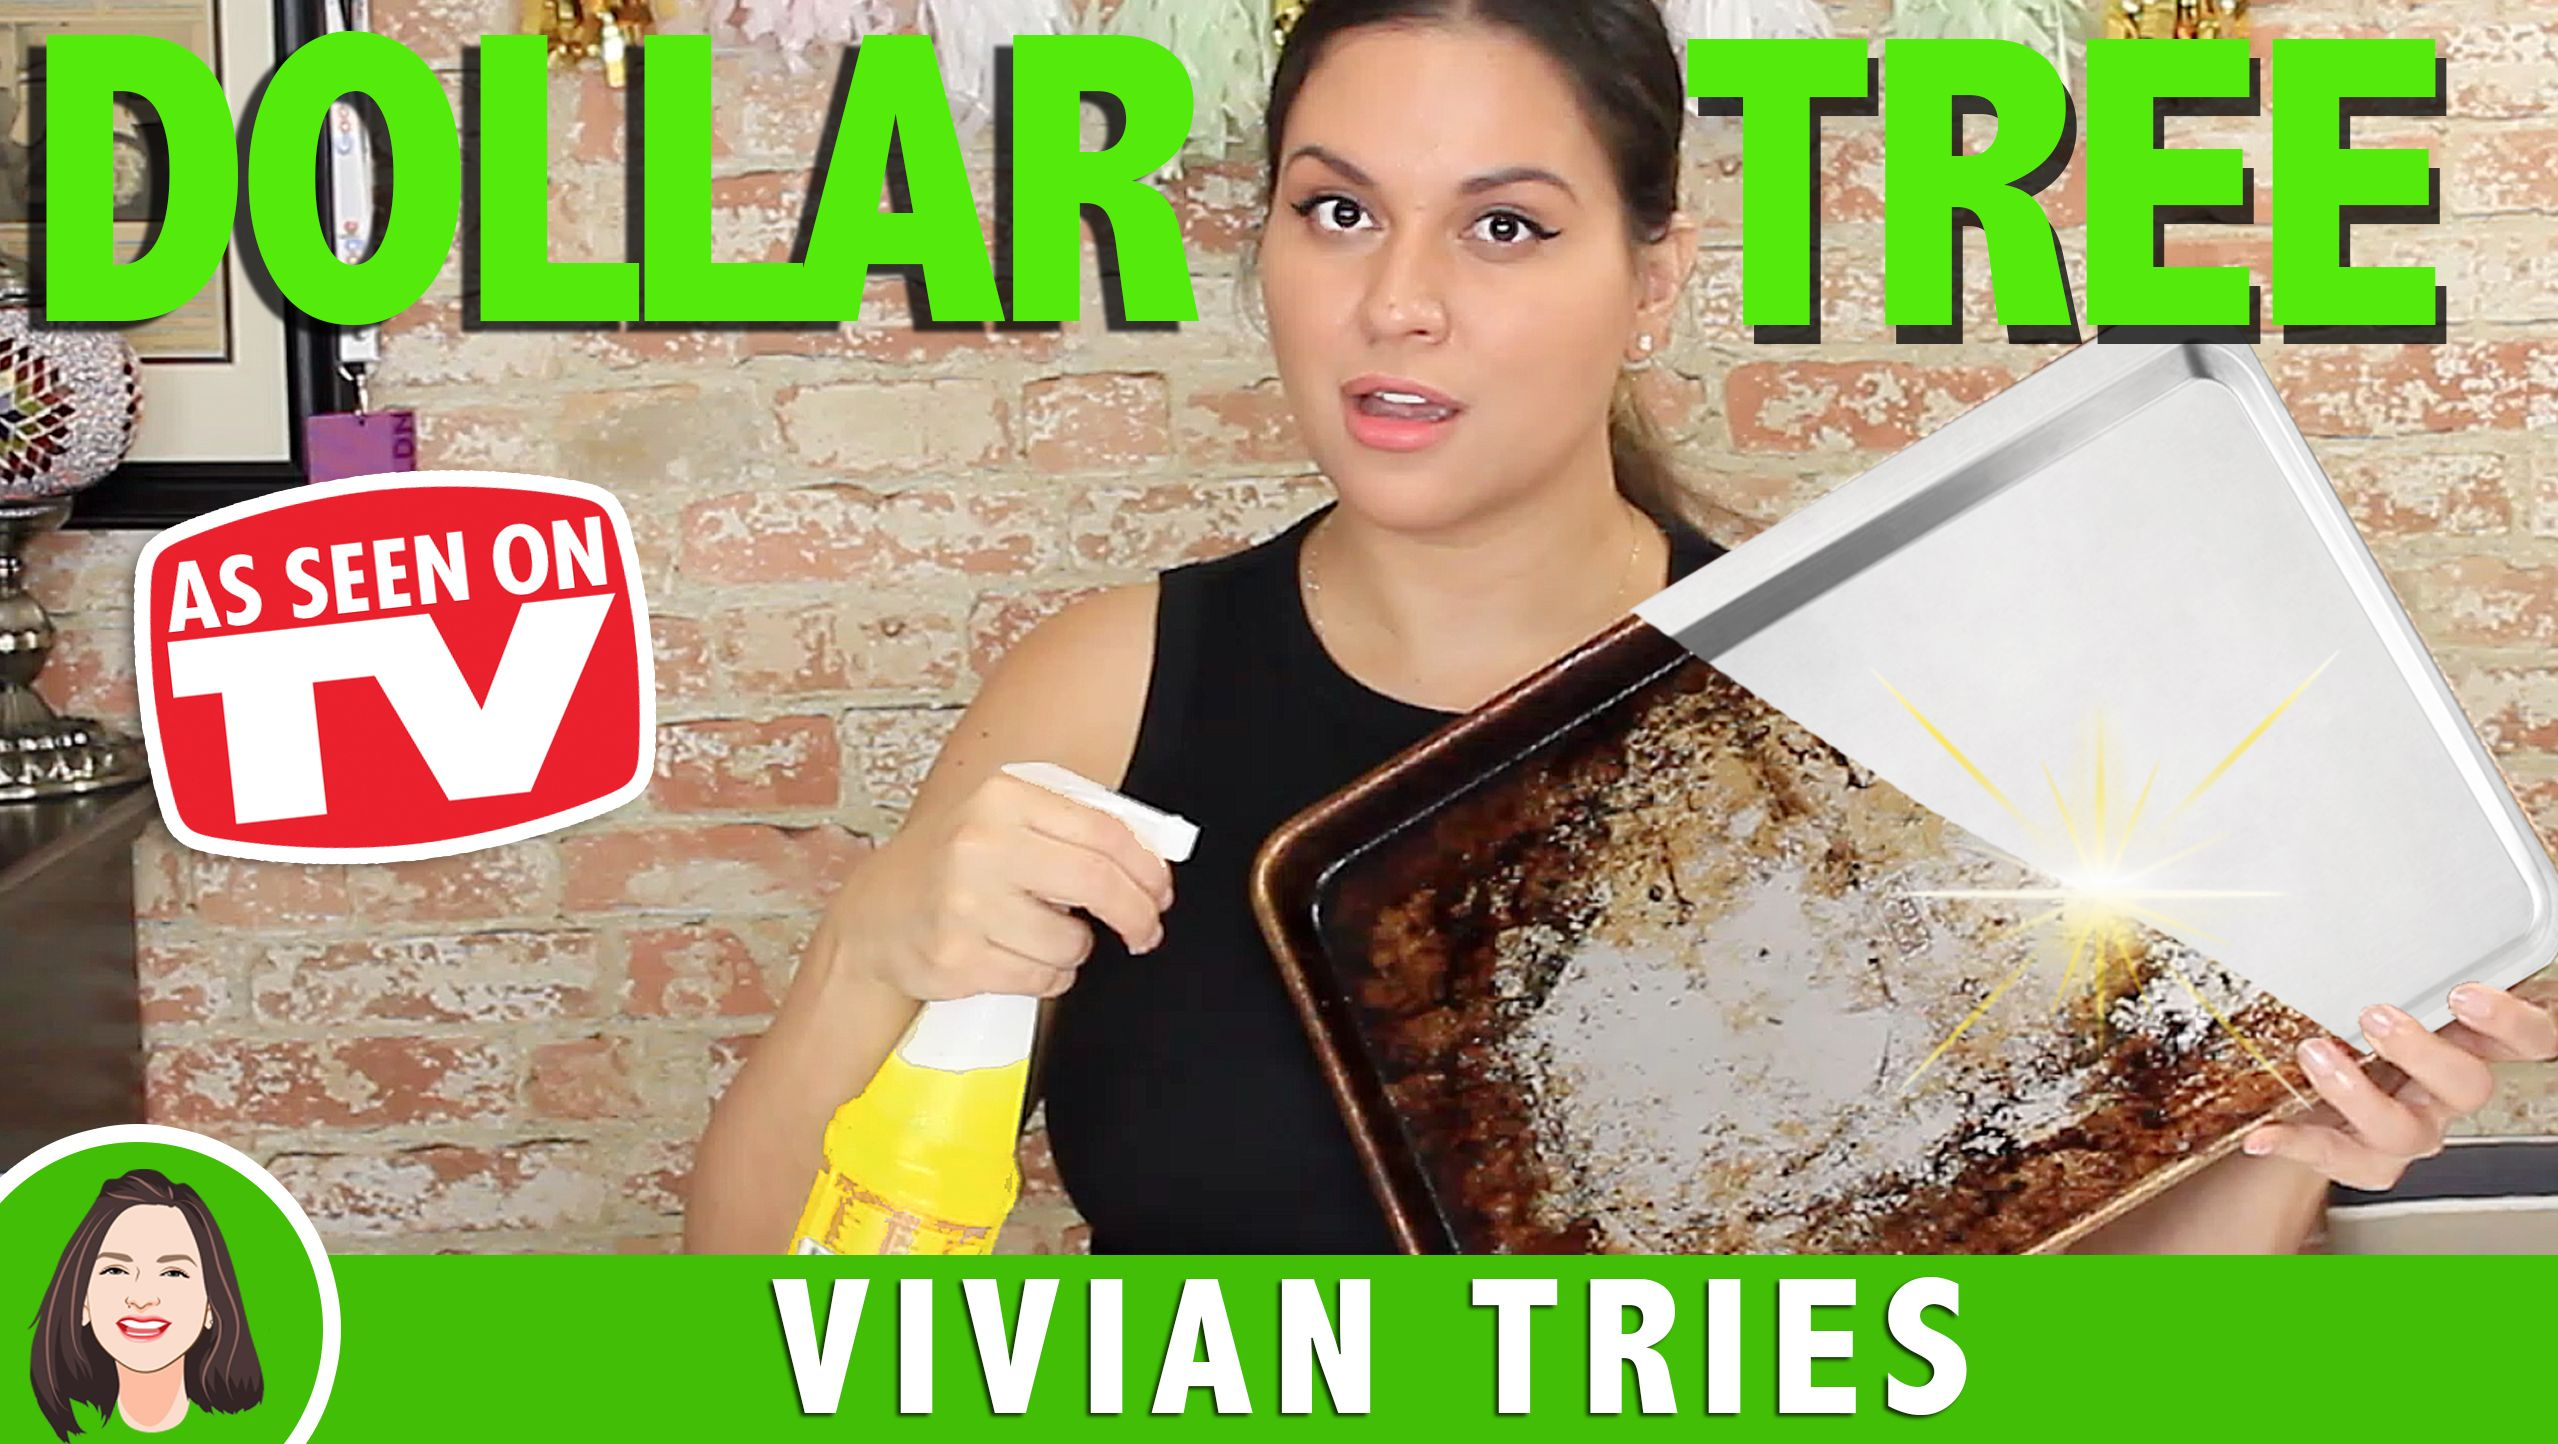 Does Dollar Tree Have The Best Degreaser Ever Made Degreasers Dollar Tree See On Tv